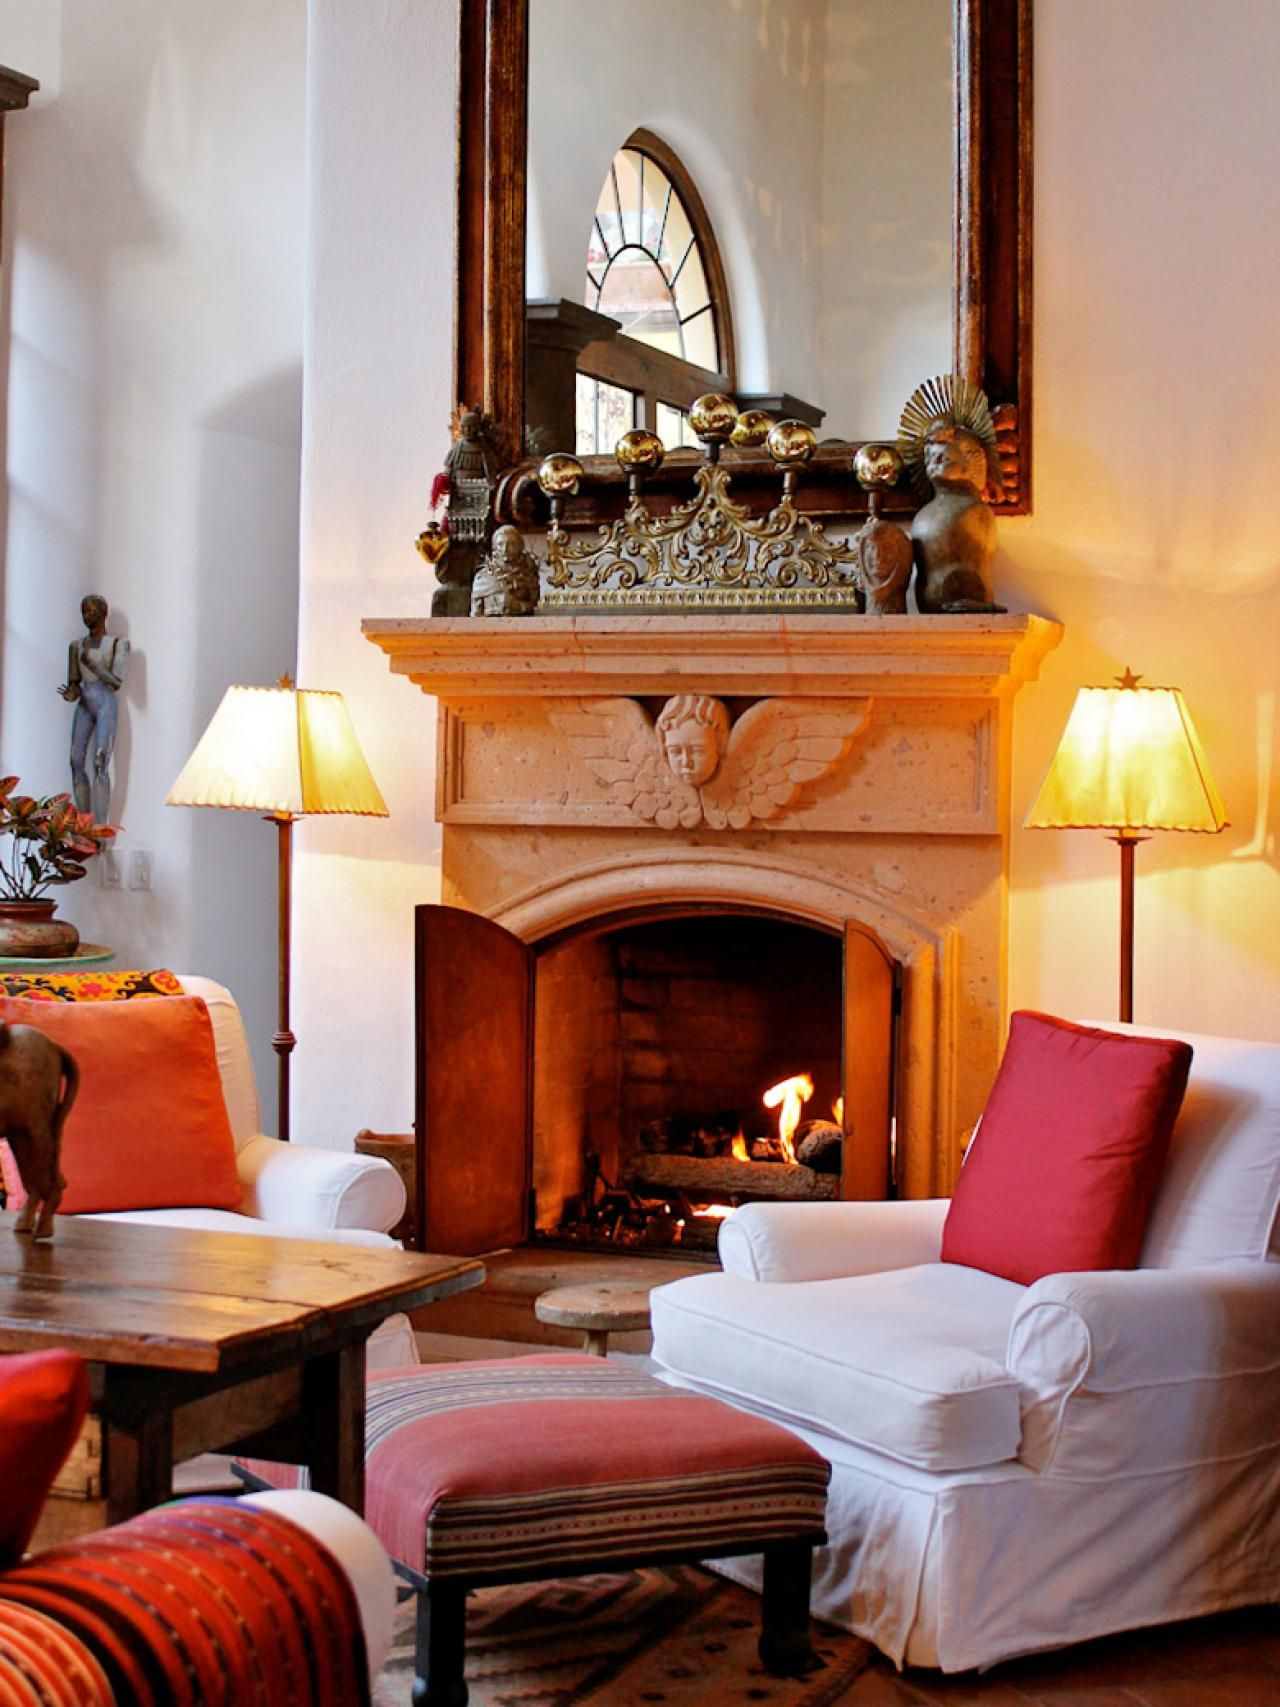 Hgtv This Spanish influenced living room features